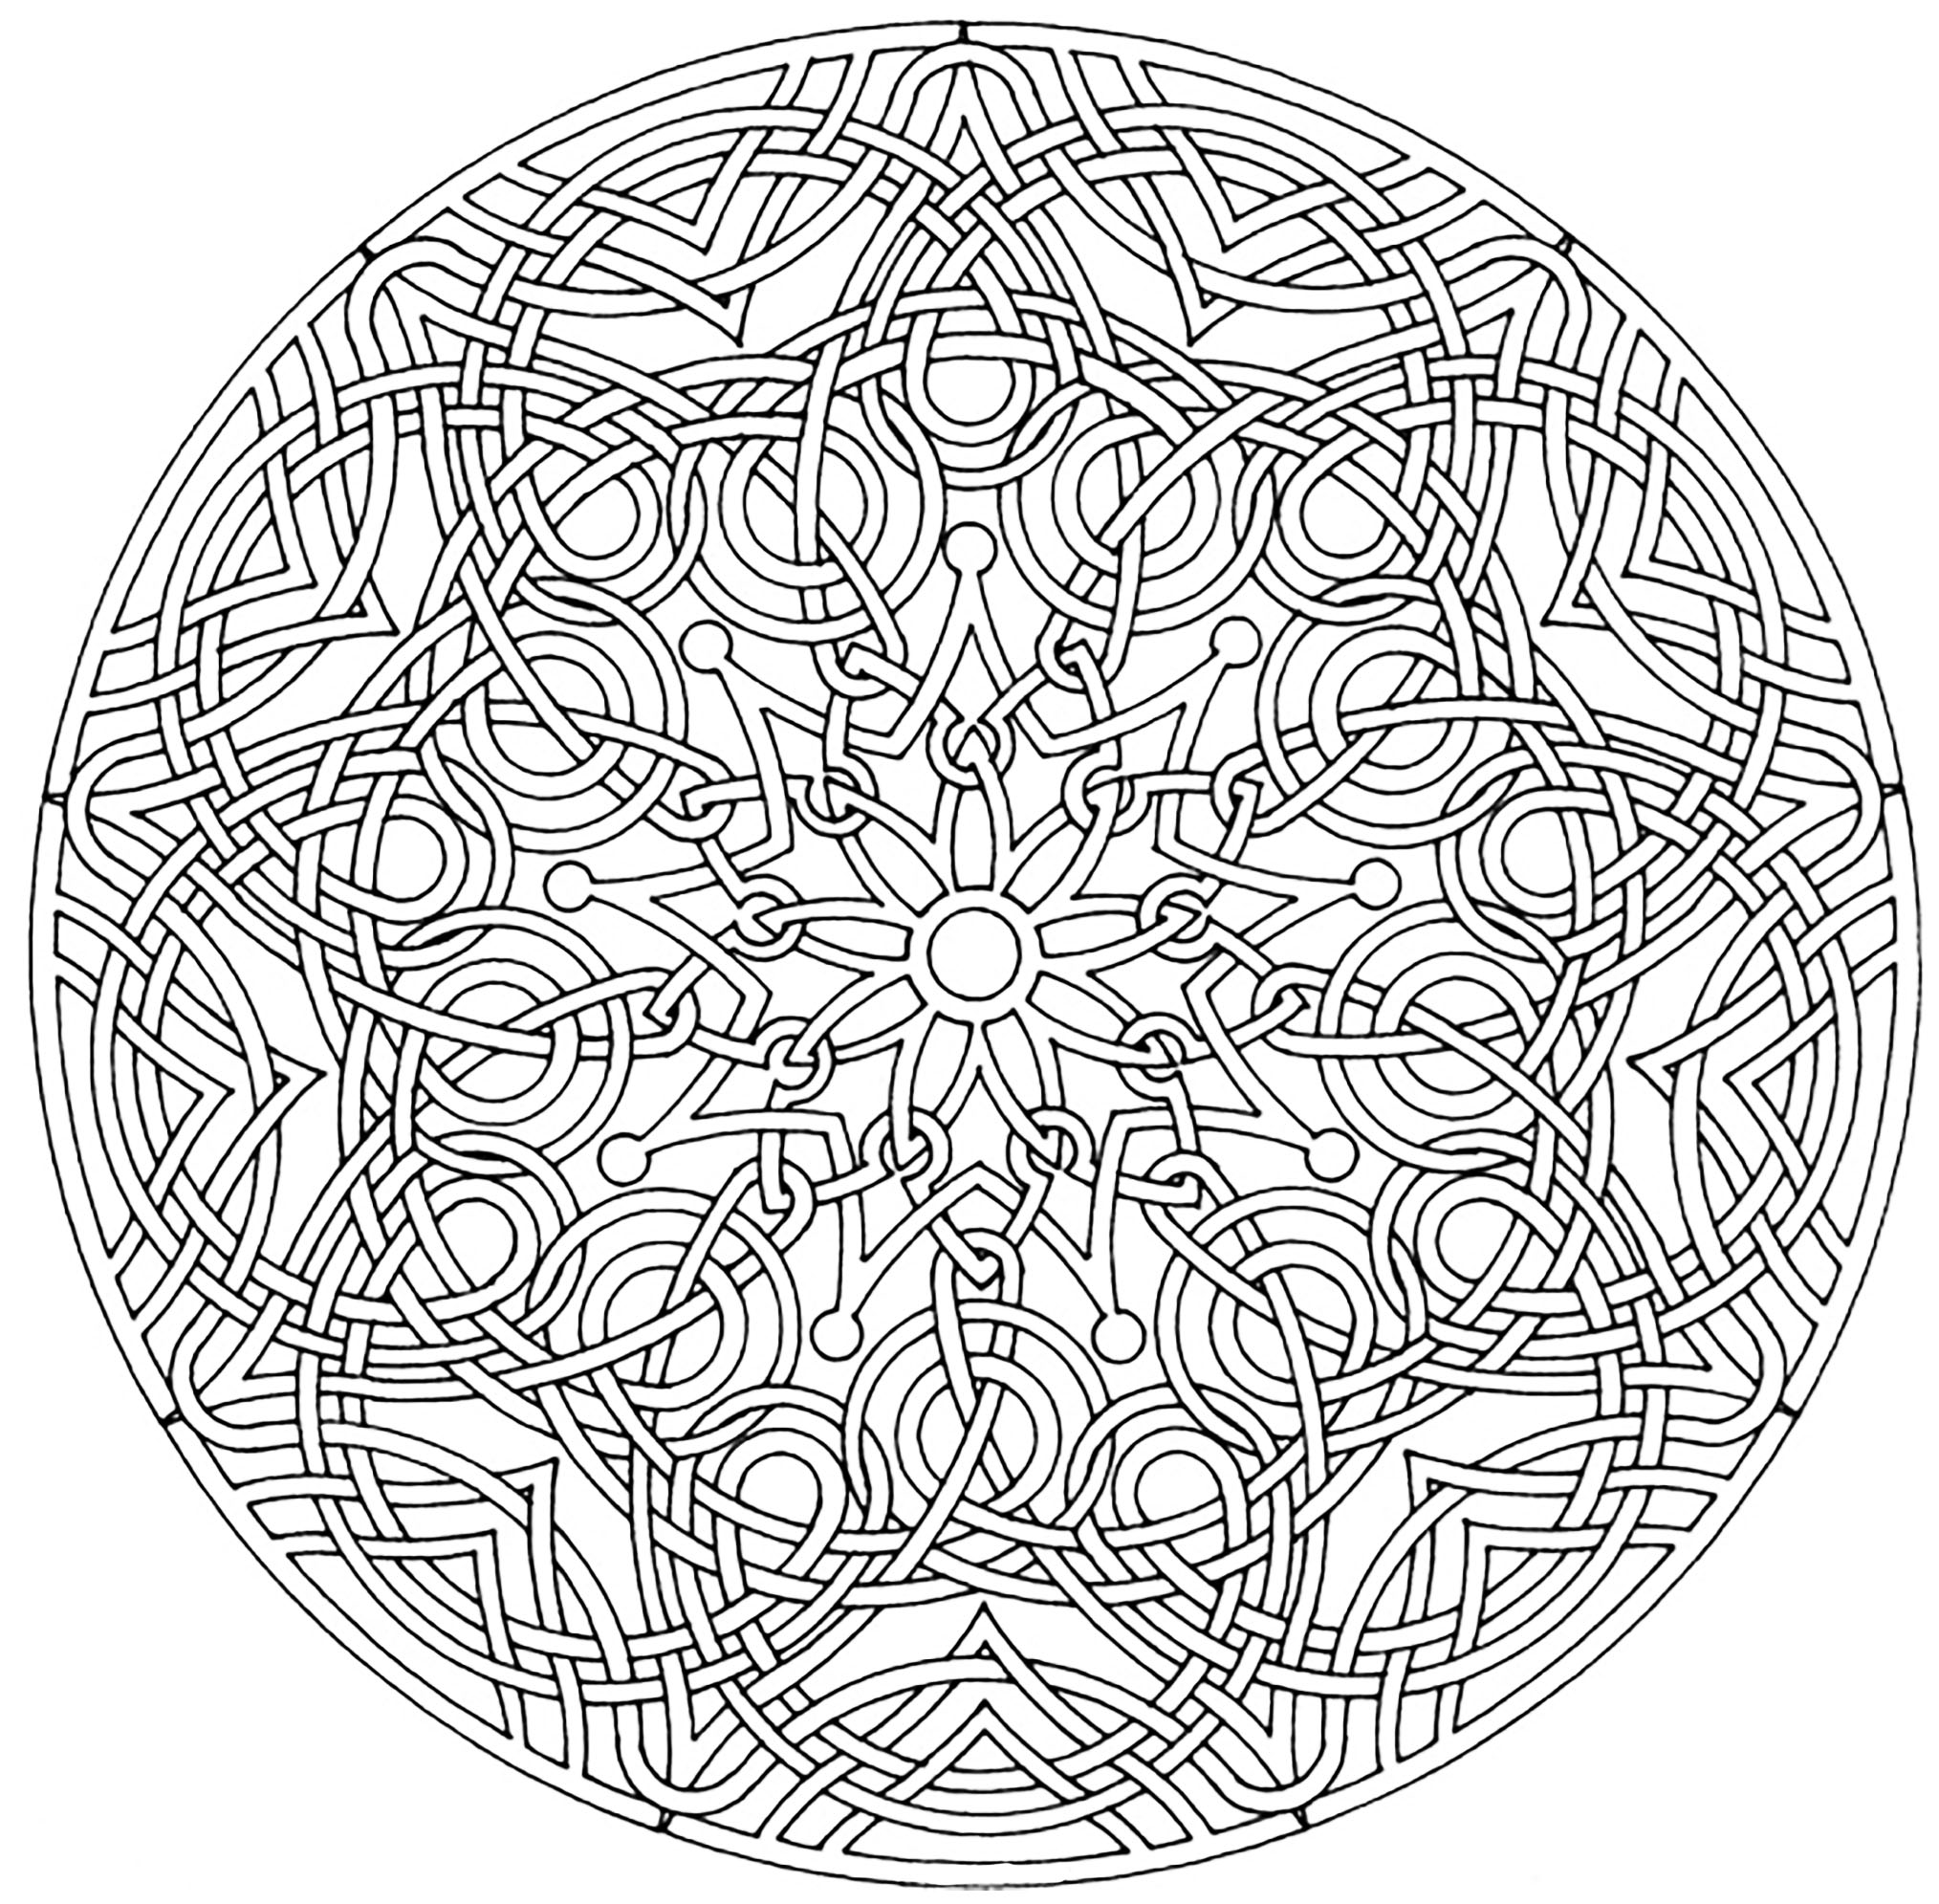 Mandalas coloring pages for adults coloring page for Adult coloring pages mandala